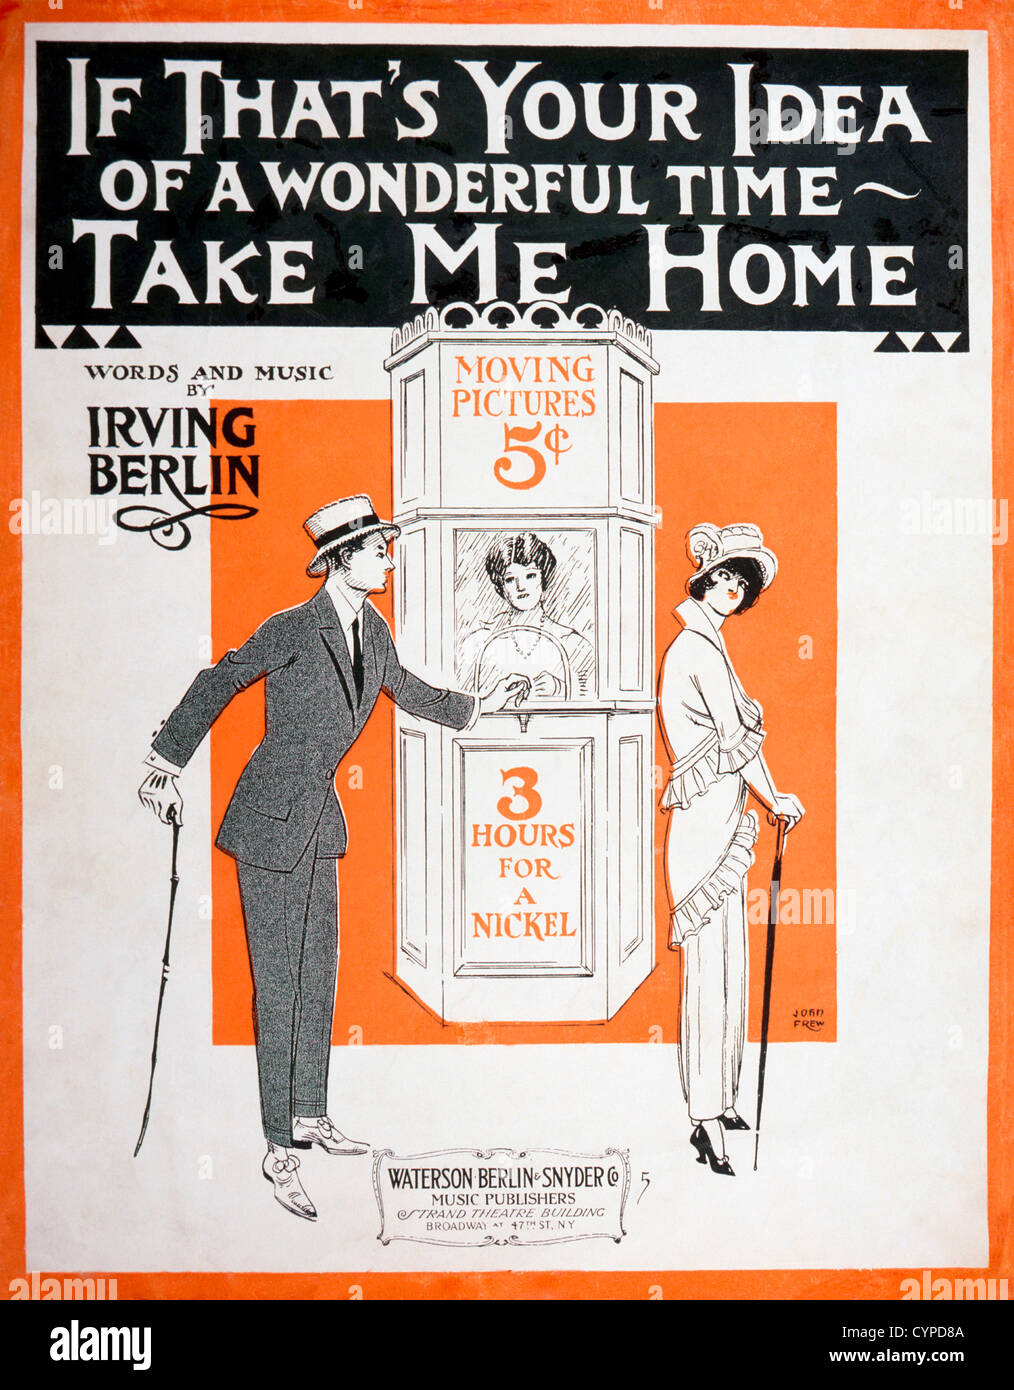 If That's Your Idea of a Wonderful Time, Take Me Home, by Irving Berlin, Musical Poster, 1914 - Stock Image